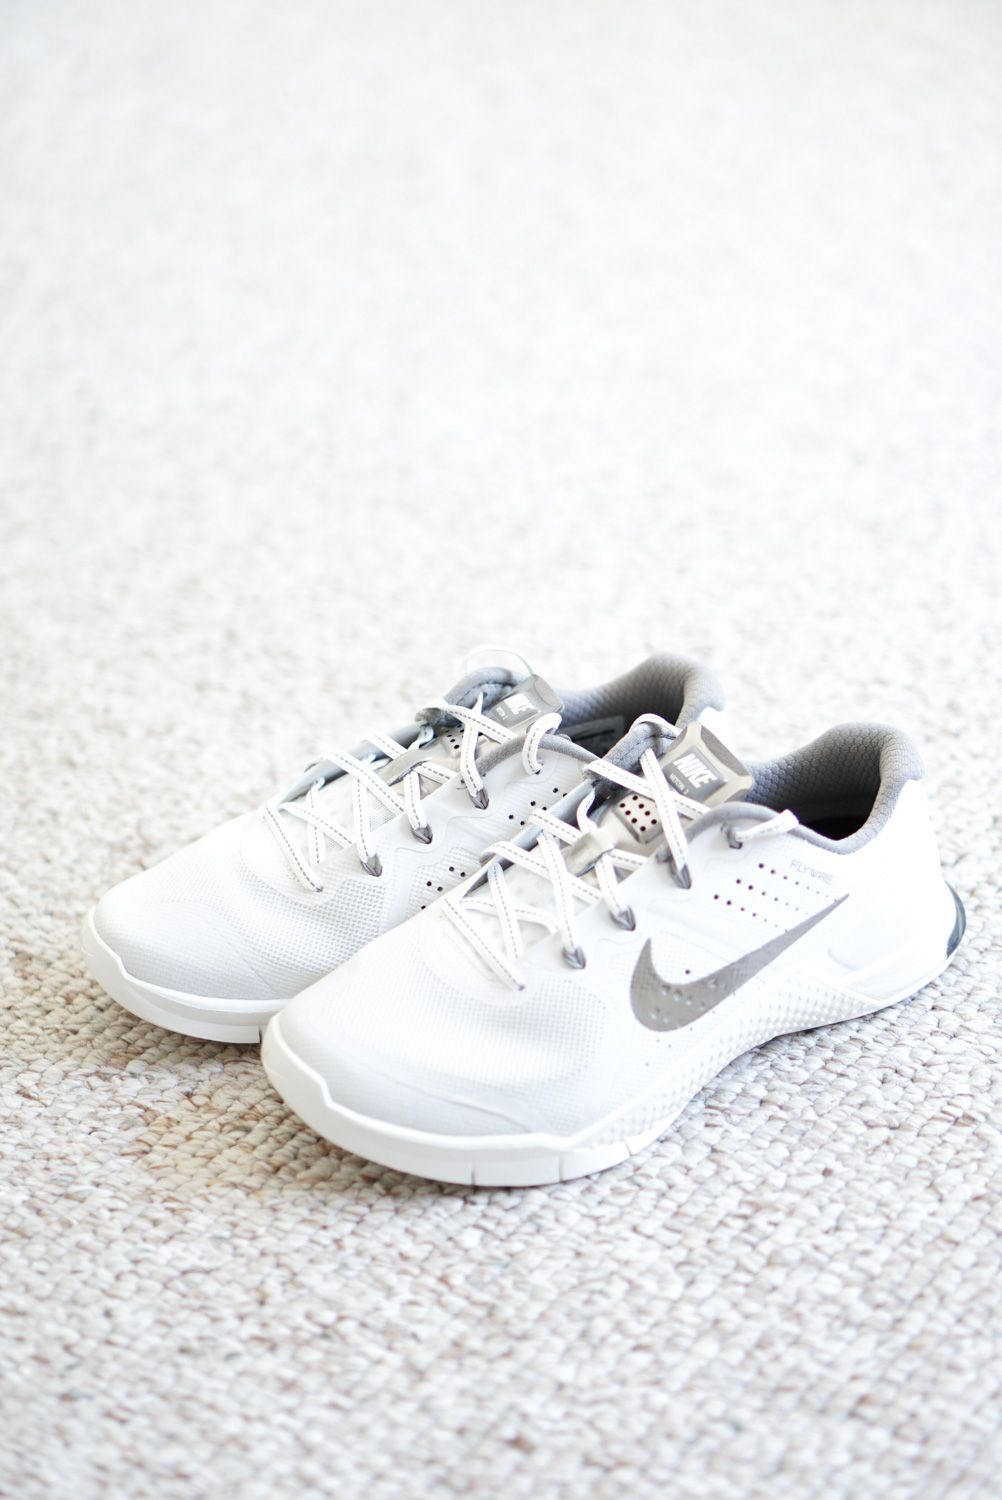 70339a17f29 Nike Metcon 2 in Summit White